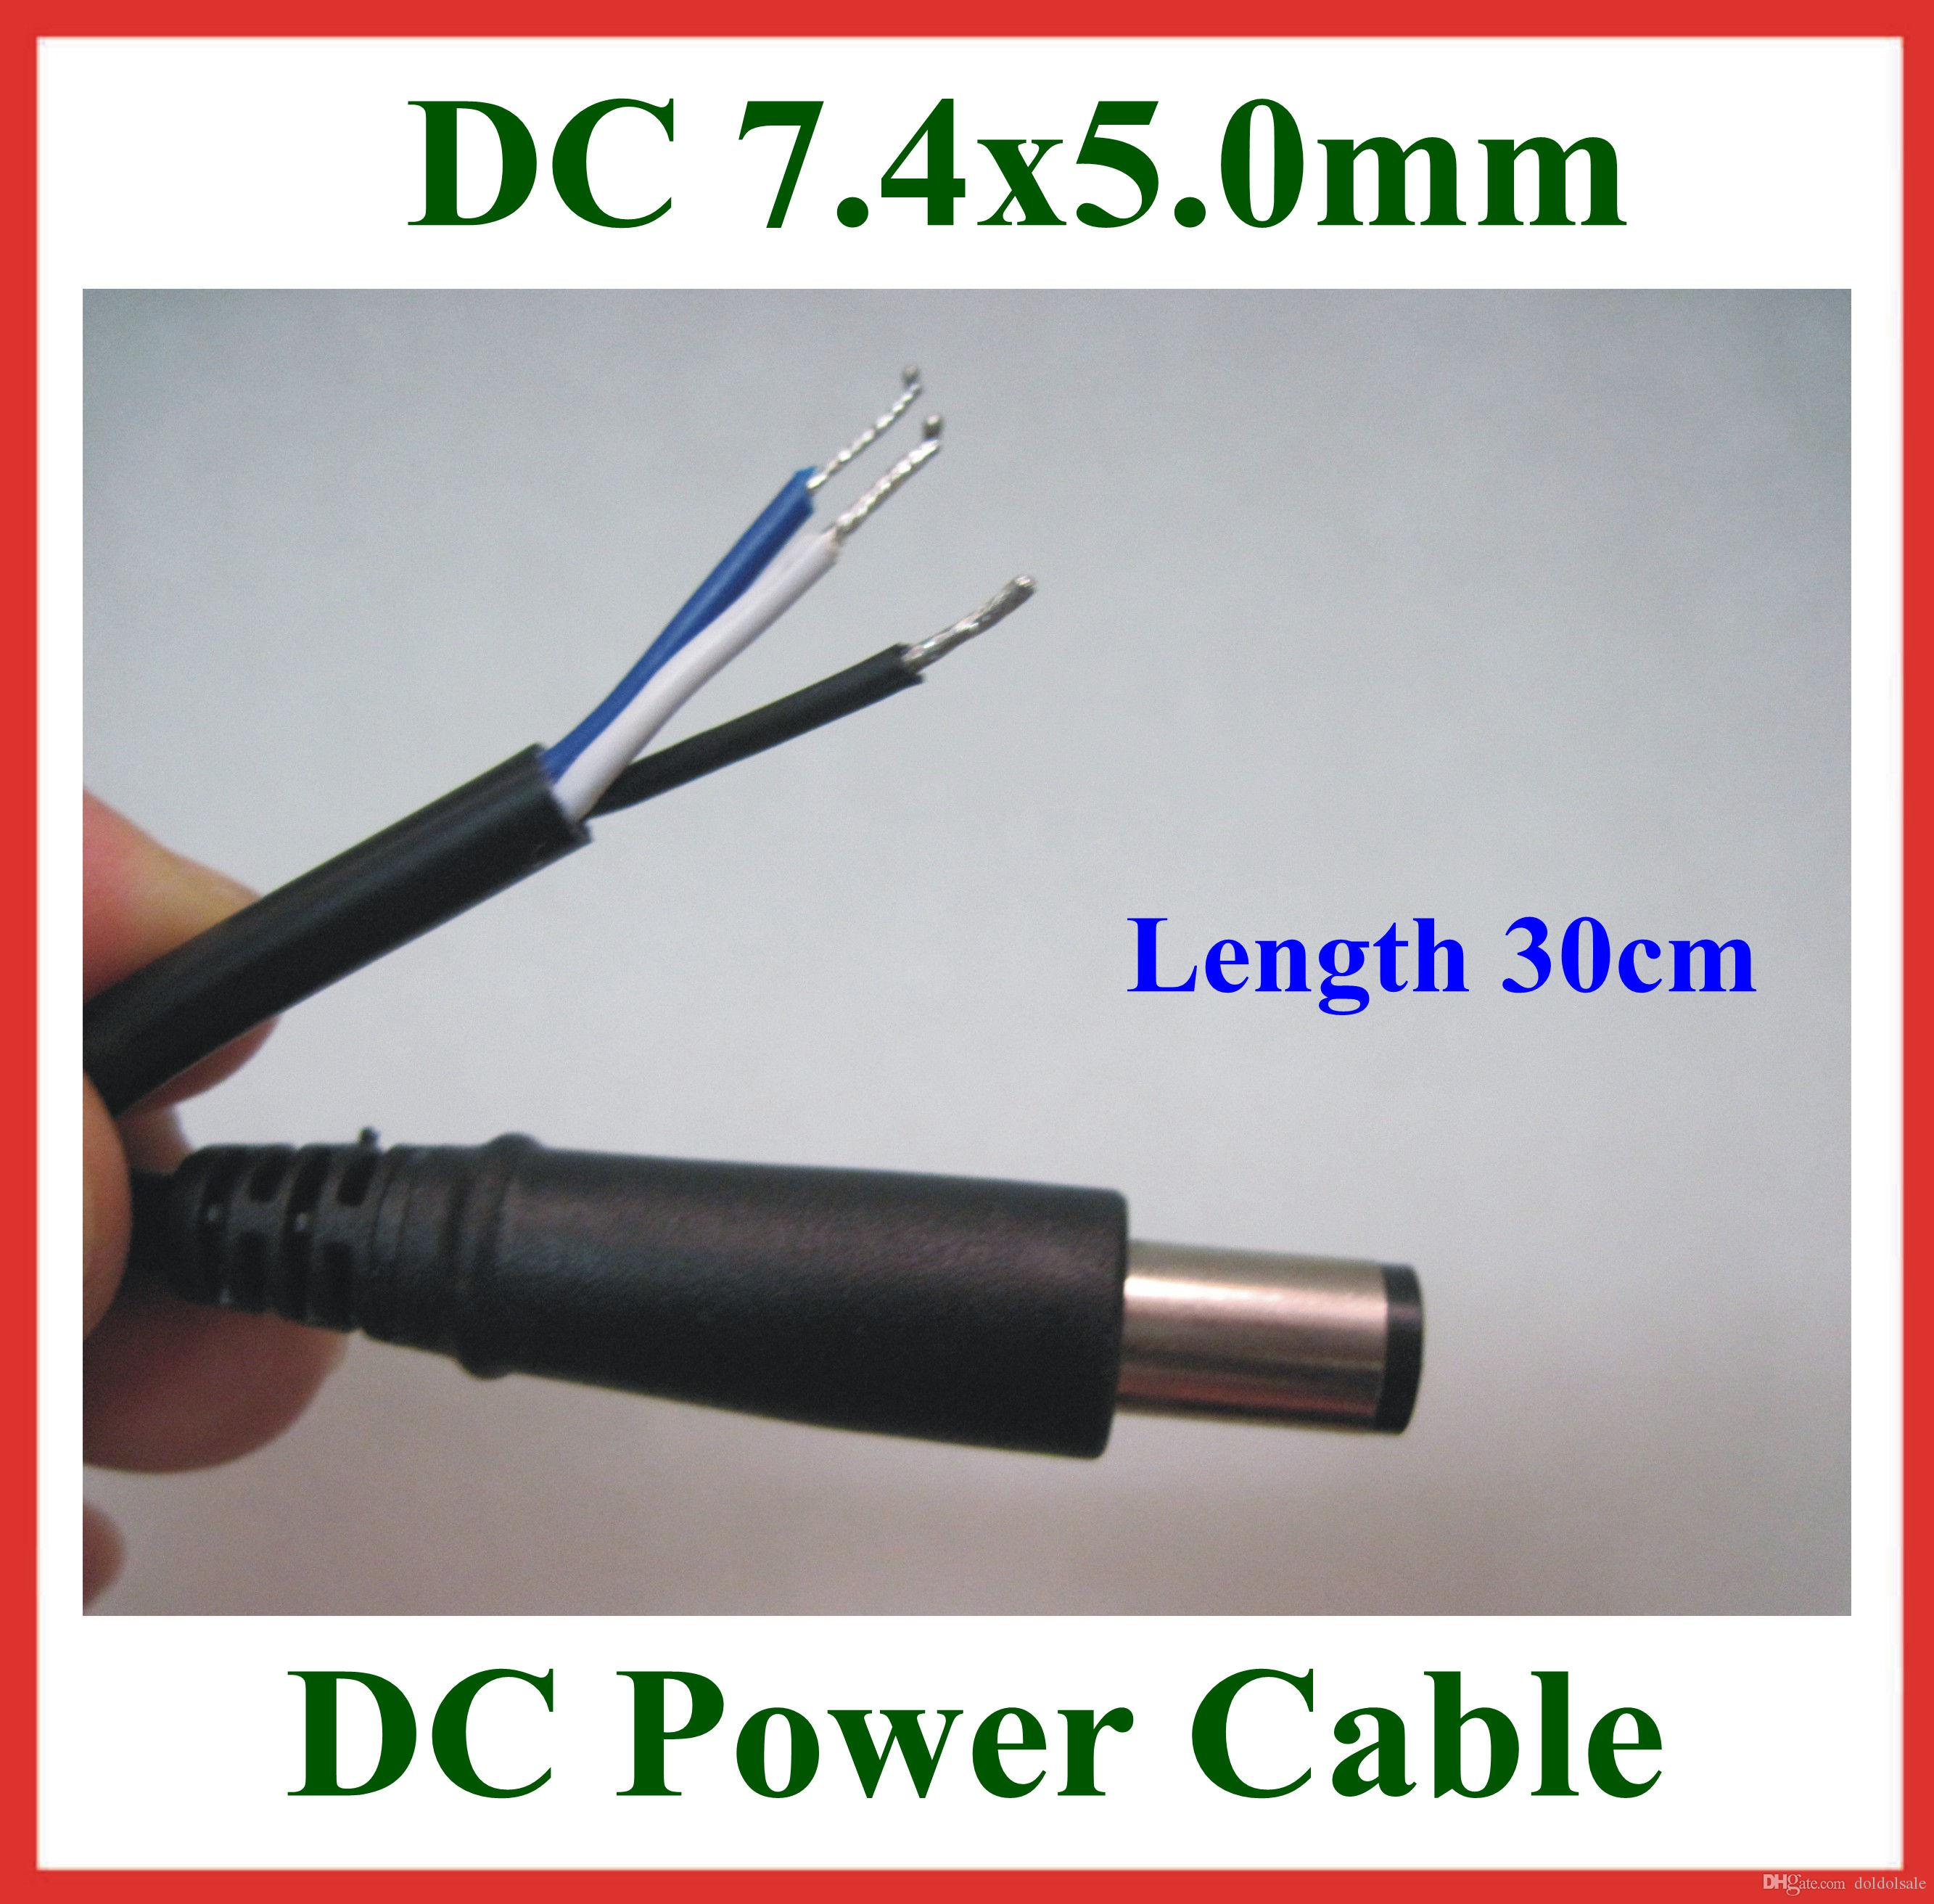 2pcs dc tip plug 7 4 5 0mm 7 4x5 0mm dc power 2018 dc tip plug 7 4*5 0mm 7 4x5 0mm dc power supply cable with hp wiring diagram laptop power supply at nearapp.co